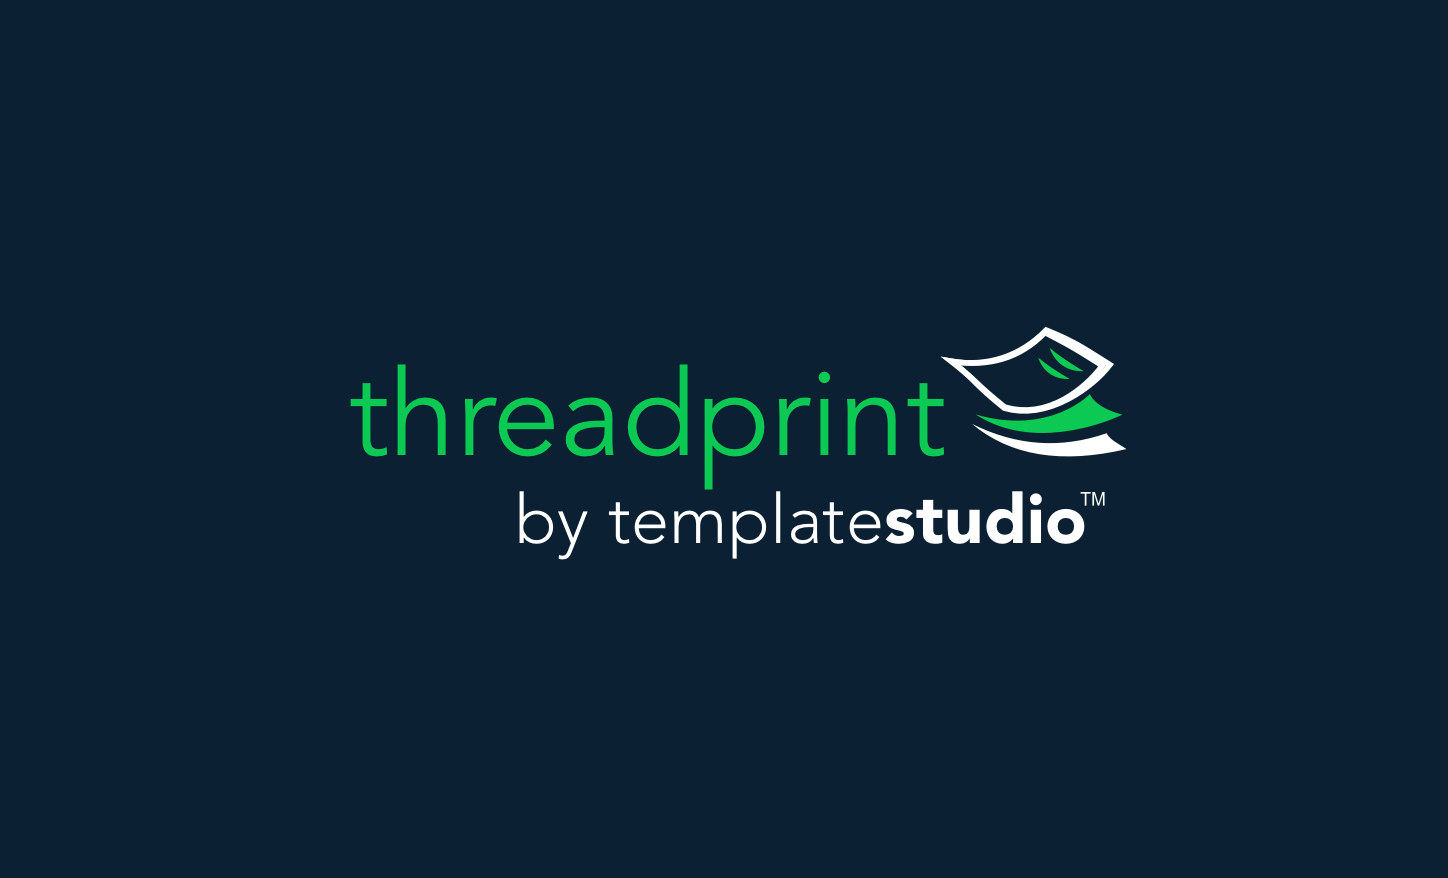 Novaplex Template Studio Threadprint logo